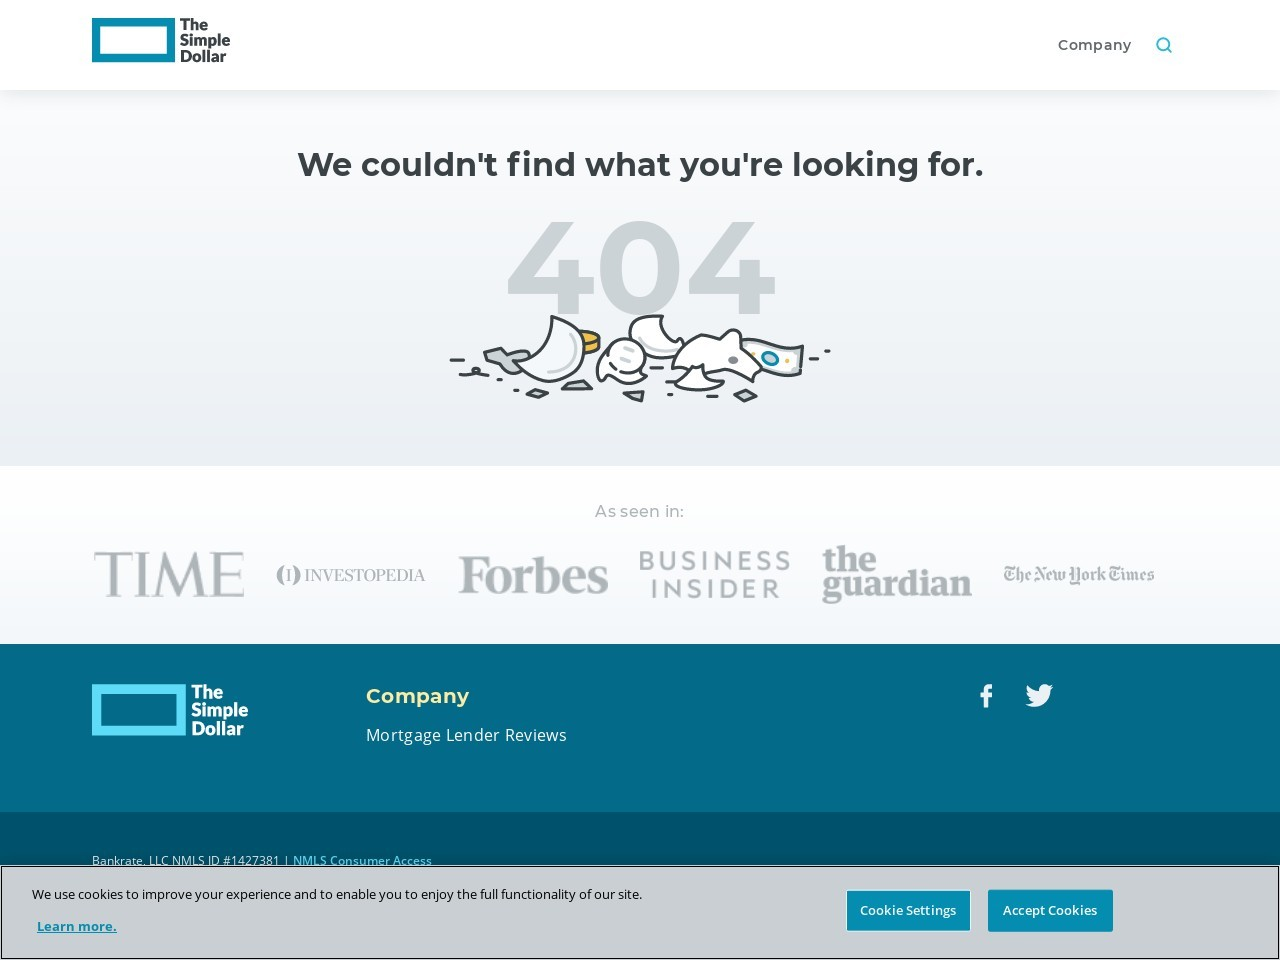 Celebrating a Meaningful Life Event Without Spending Money